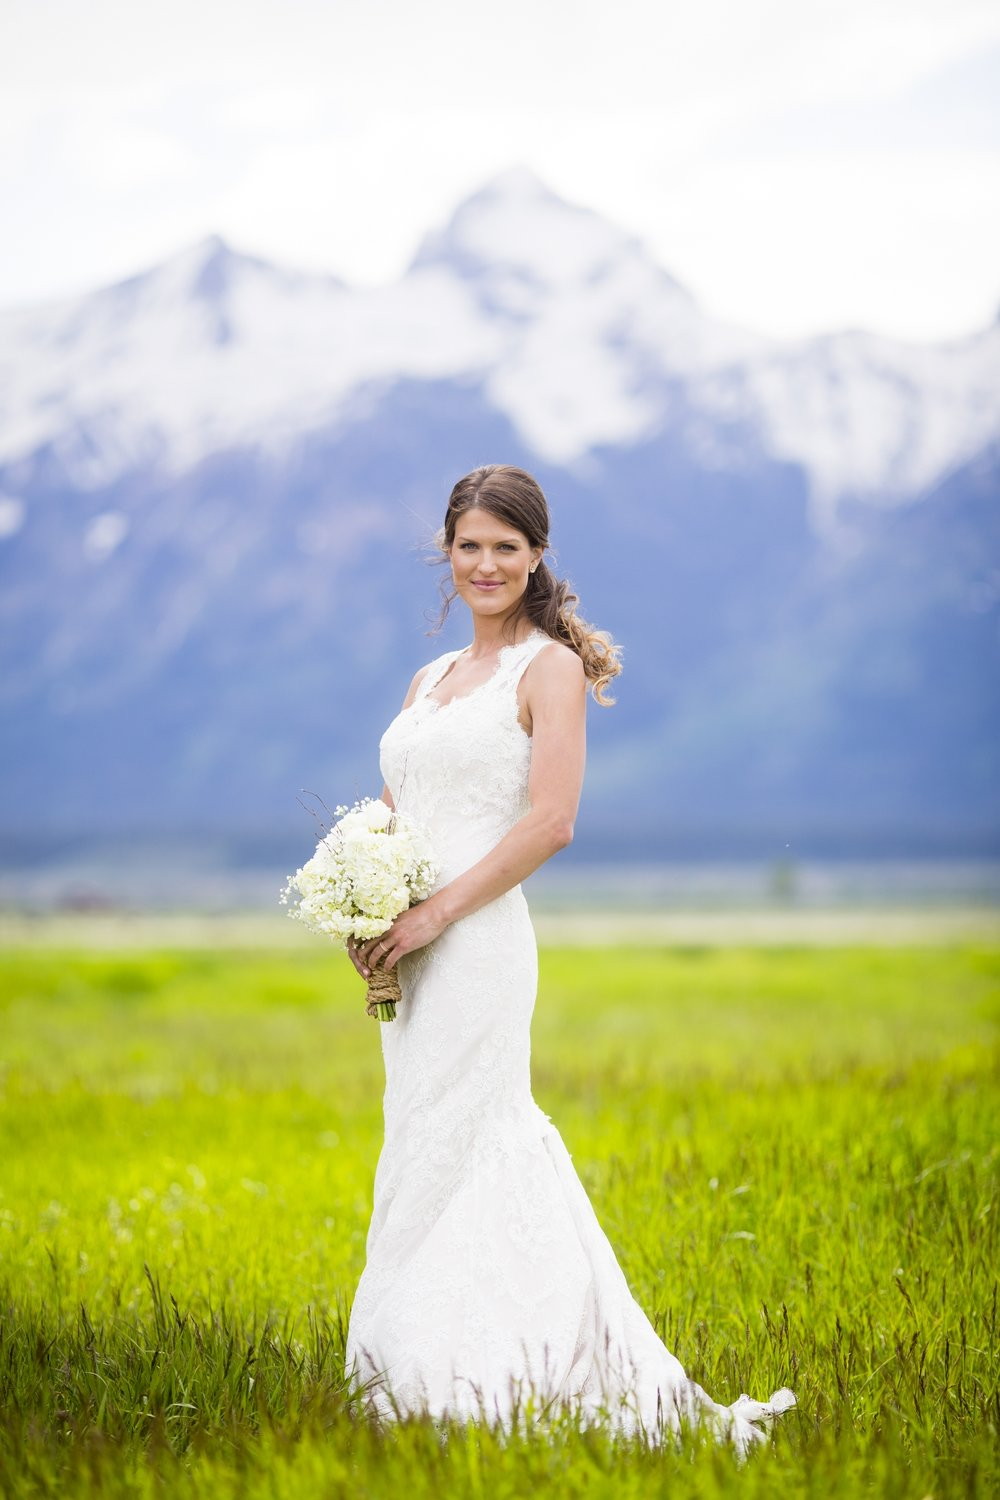 Cross Wedding Jackson Hole 2014_0219.JPG